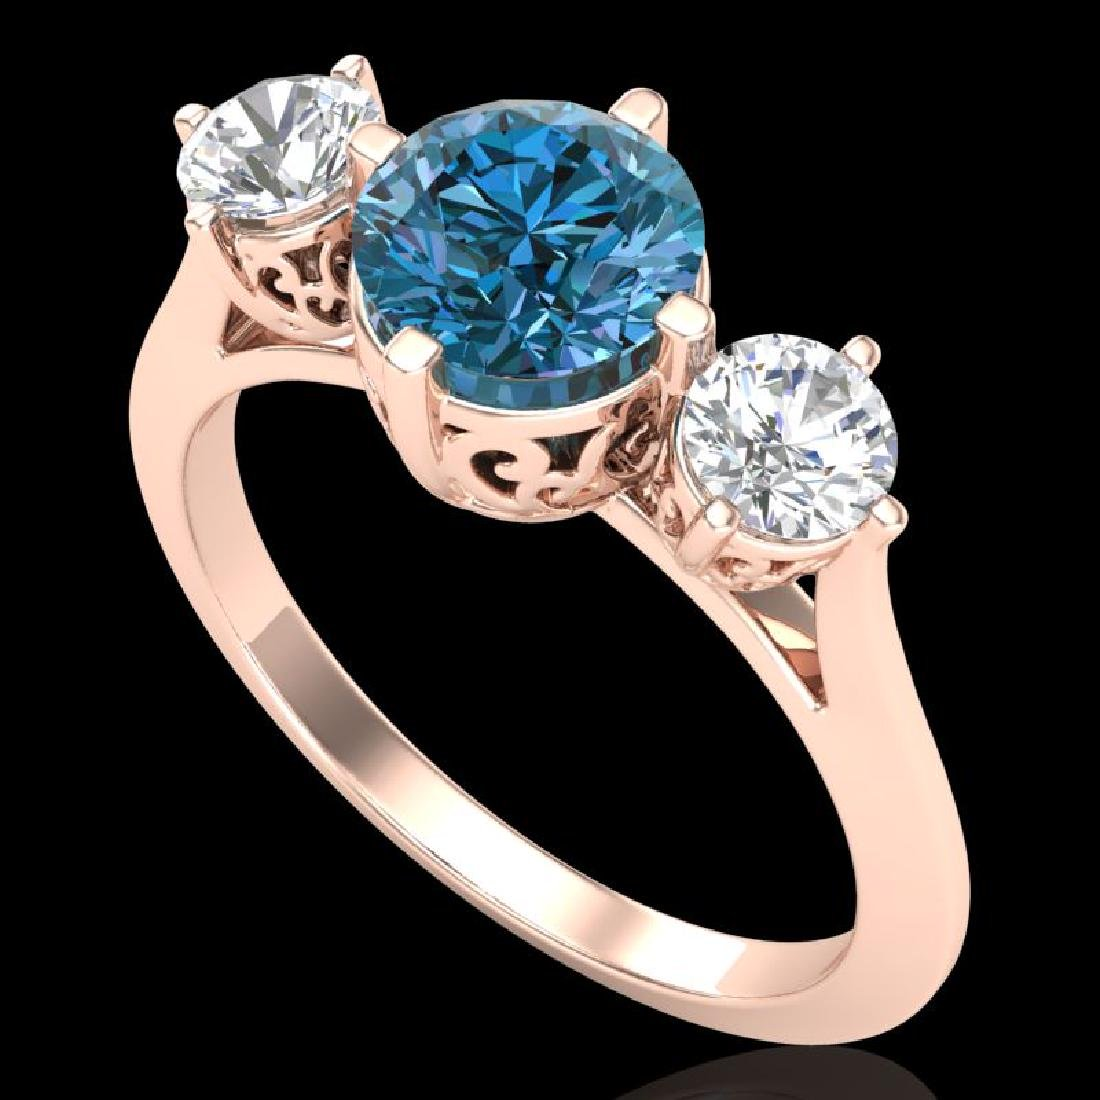 1.51 CTW Intense Blue Diamond Solitaire Art Deco 3